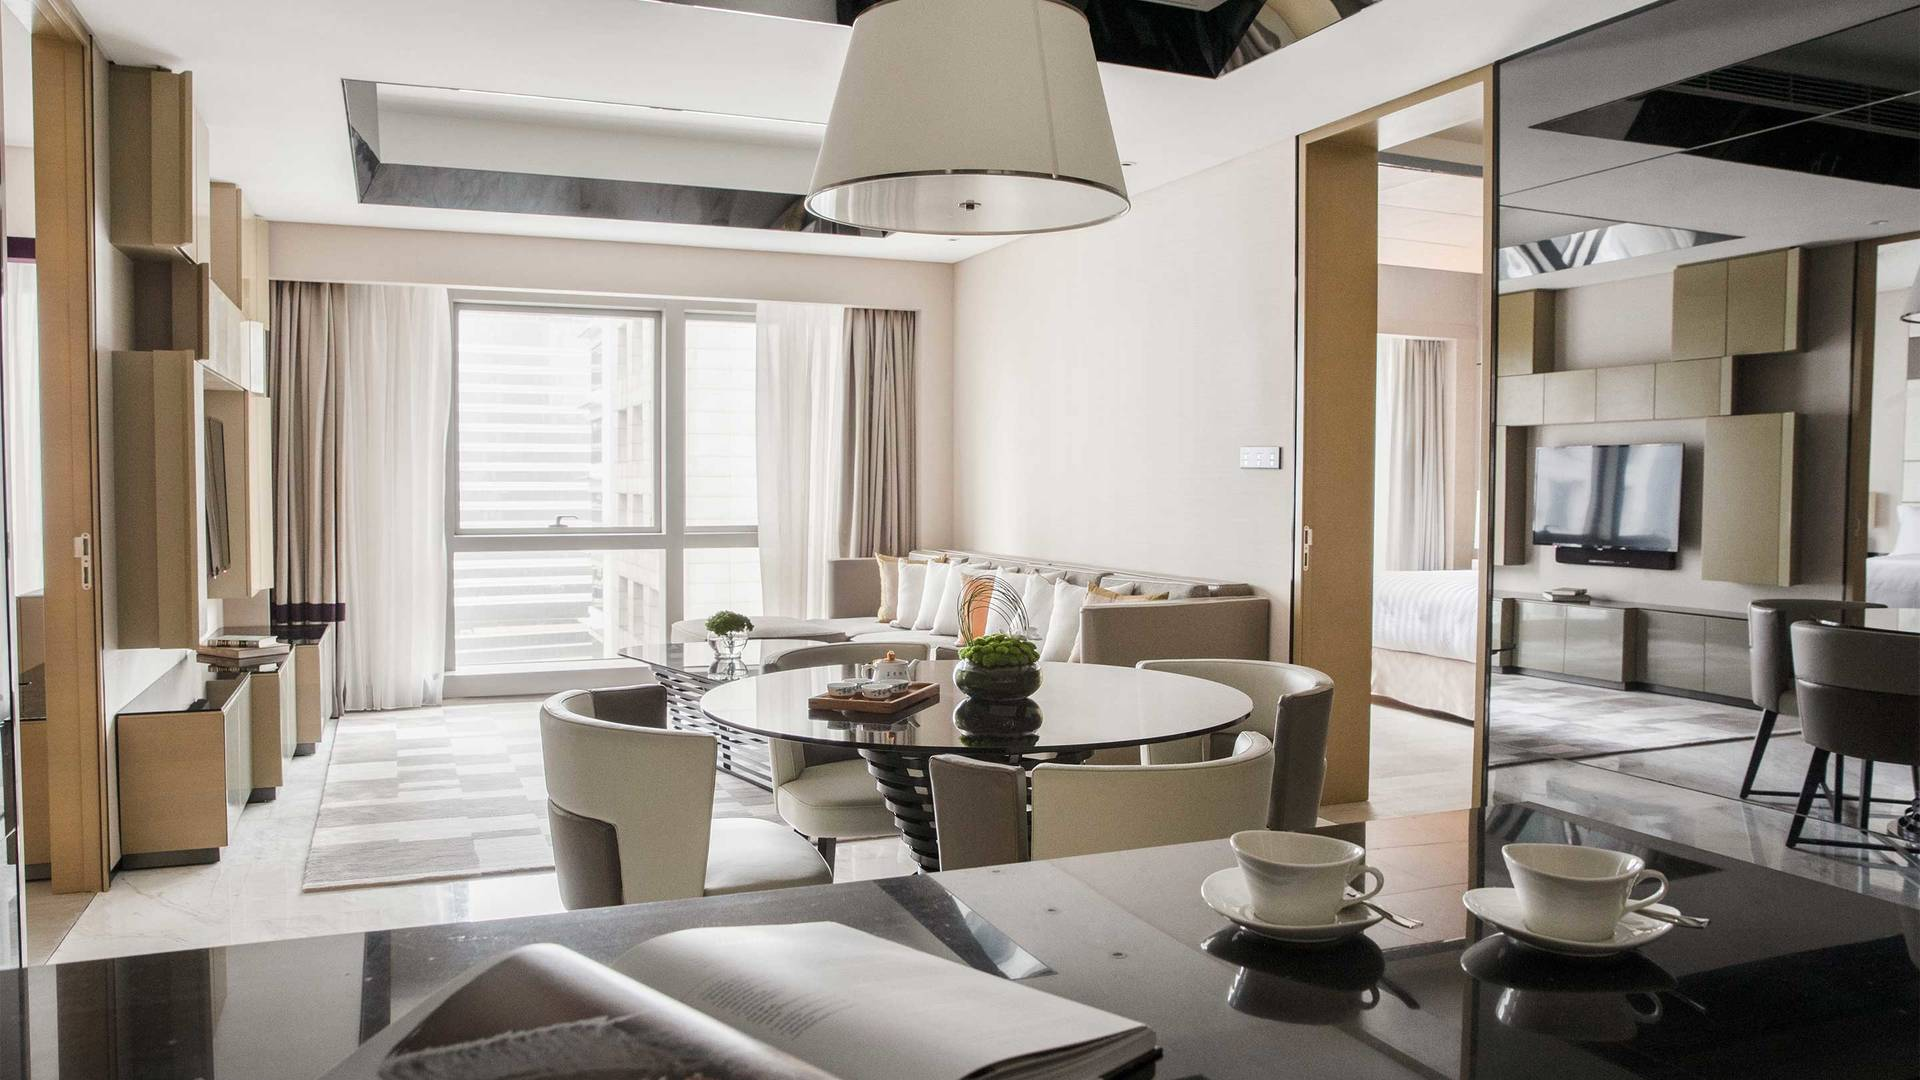 16-9 JUMEIRAH LIVING GUANGZHOU Deluxe Contemporary 2 bed room suite living room